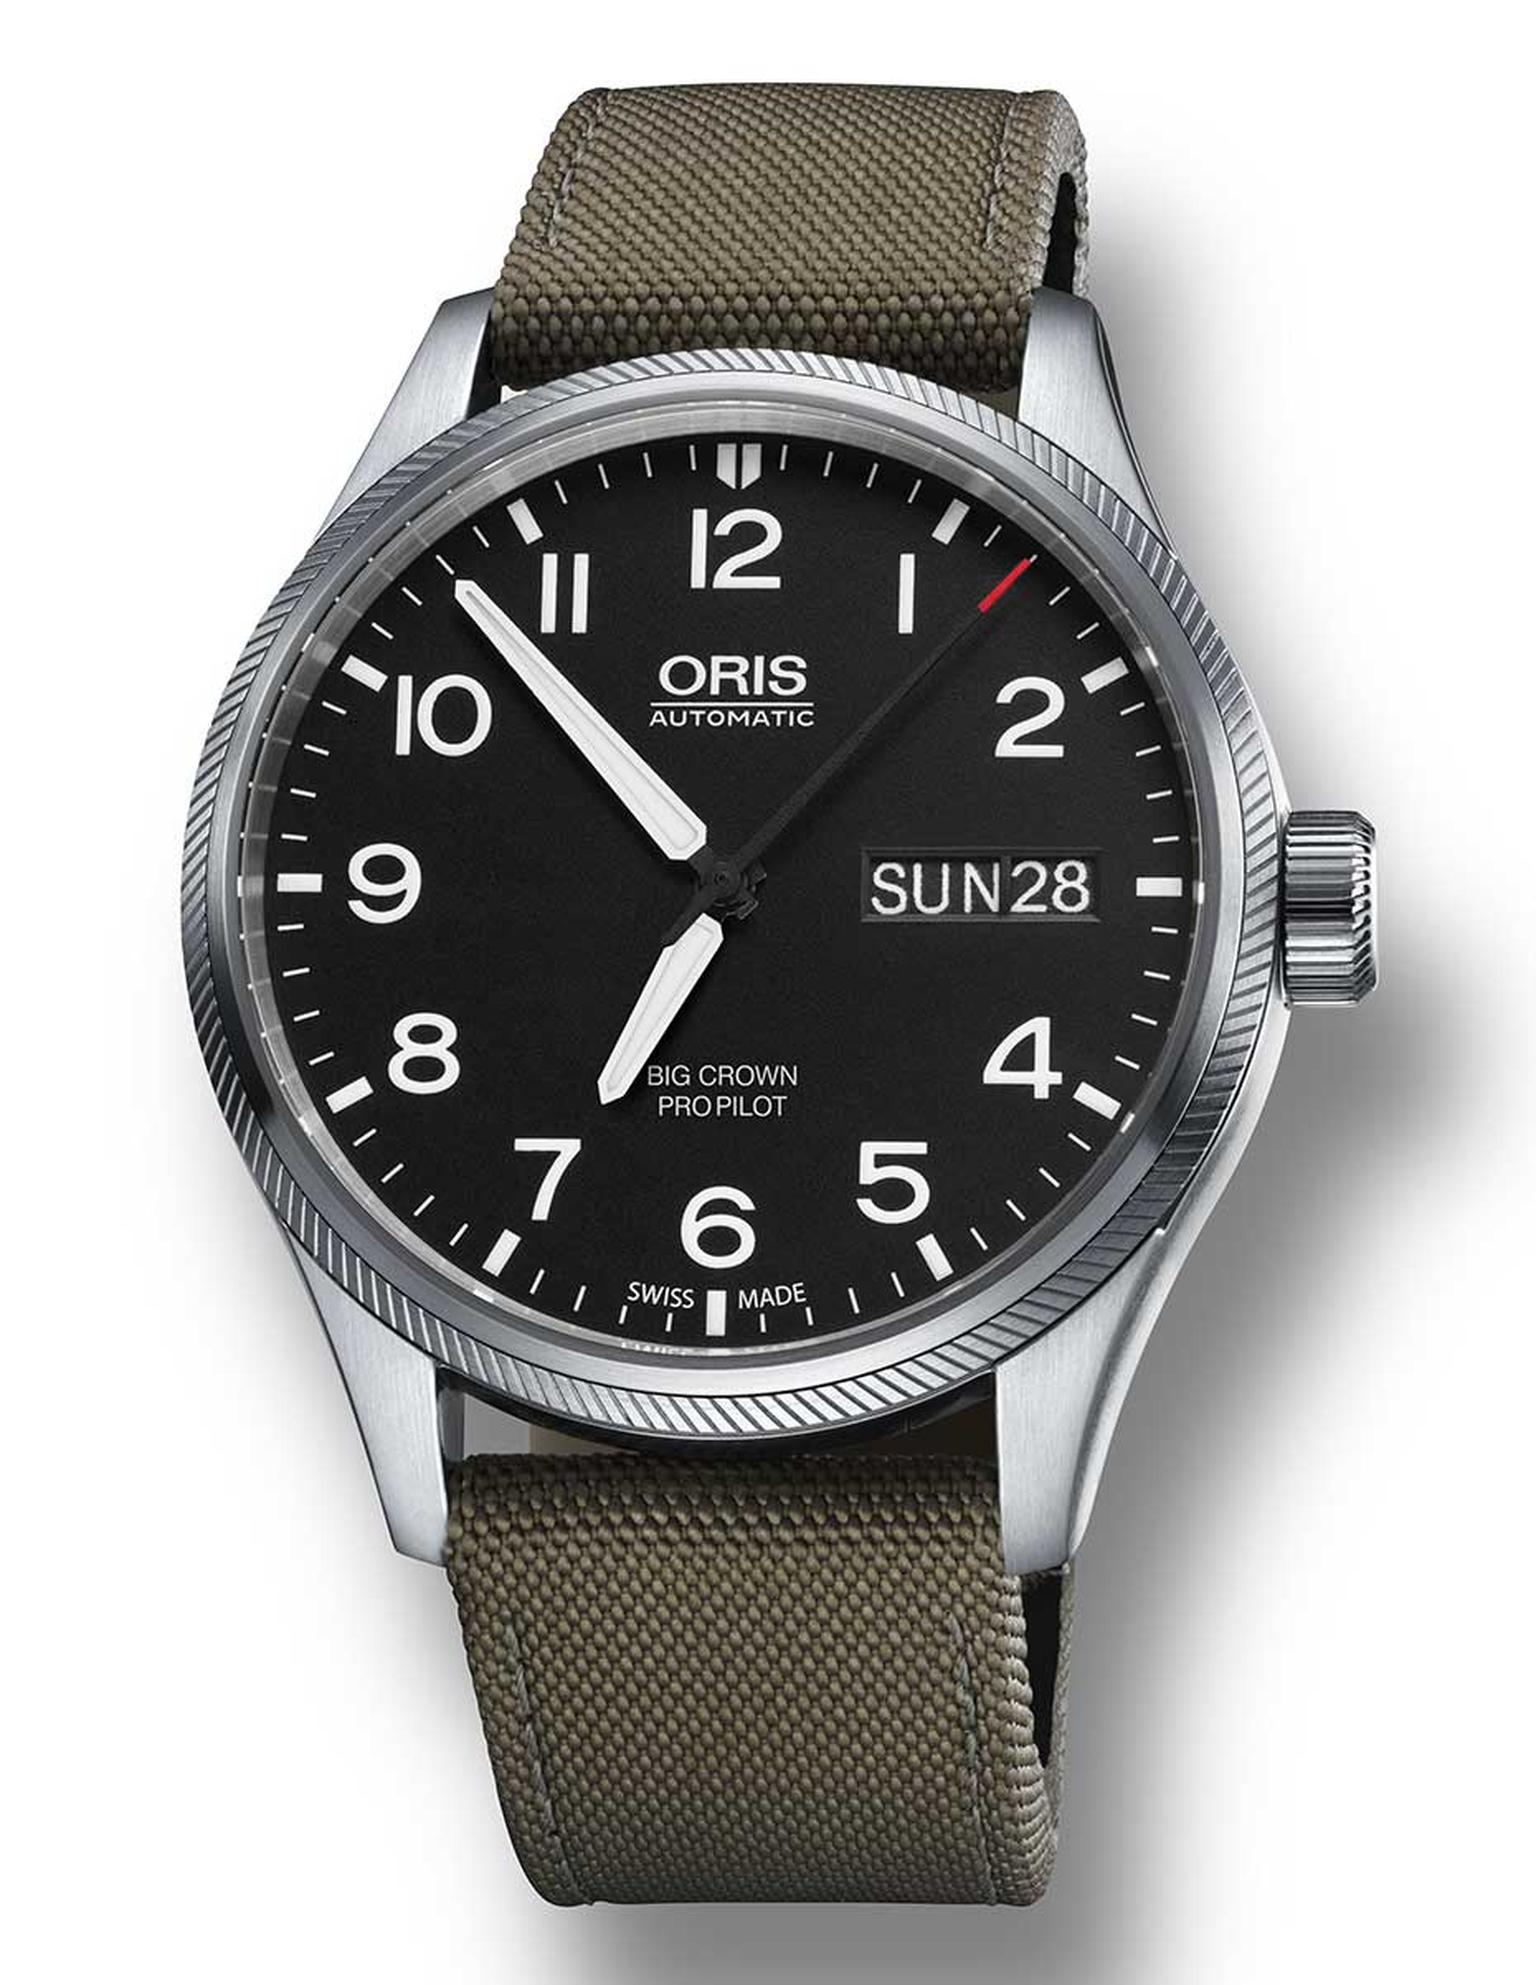 Oris has added a whole new line to its impressive collection of pilots' watches for 2014, including the automatic Big Crown ProPilot Date with a steel case, automatic movement, black dial and olive fabric strap